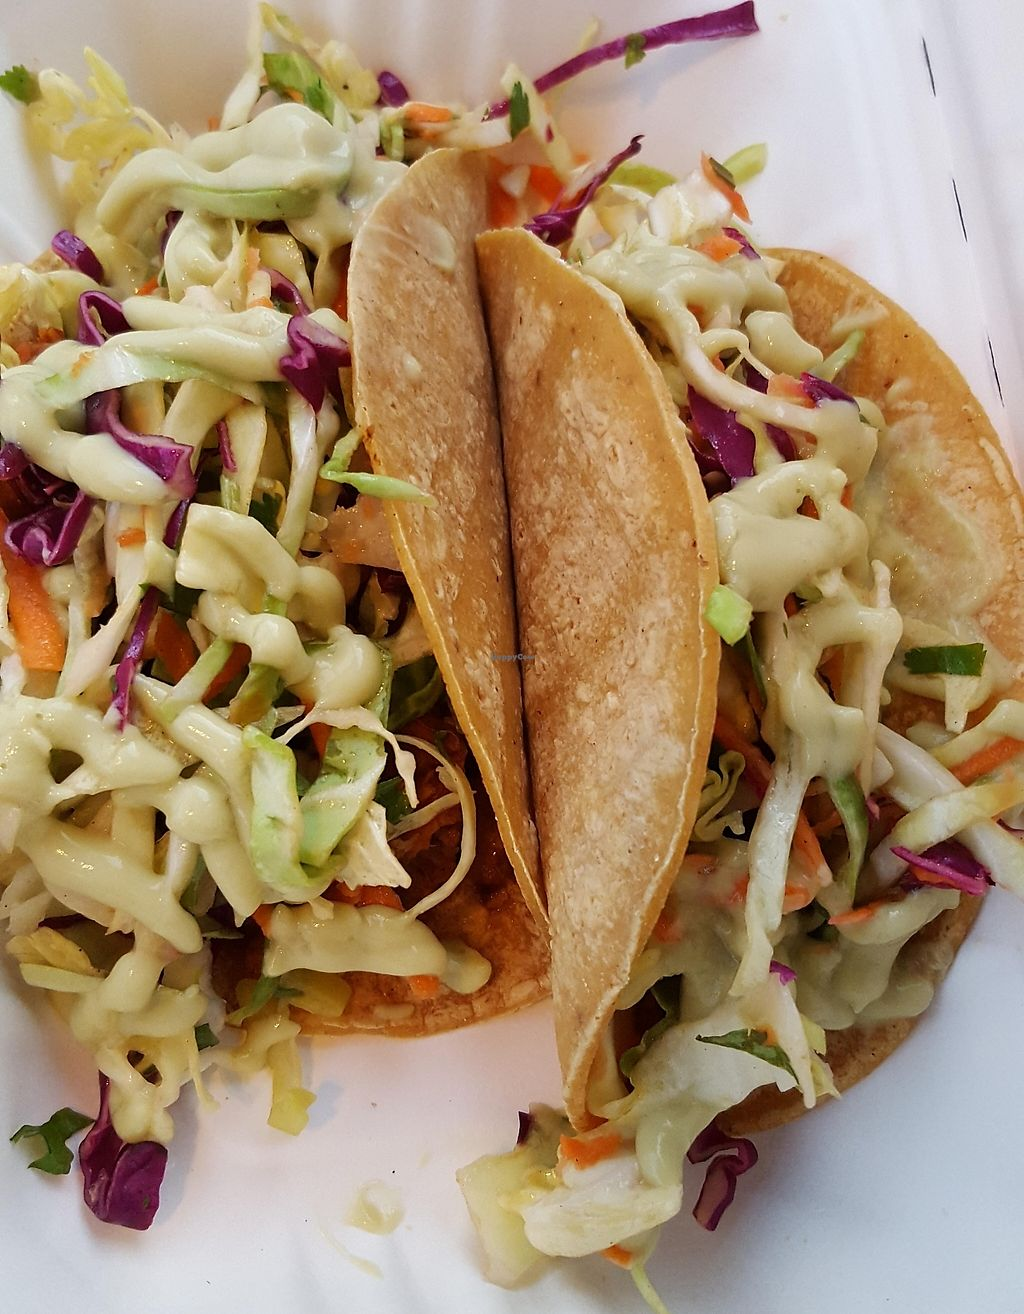 """Photo of CLOSED: Baagan  by <a href=""""/members/profile/MurphyDani"""">MurphyDani</a> <br/>Roasted chipotle tacos <br/> December 16, 2015  - <a href='/contact/abuse/image/27372/194236'>Report</a>"""